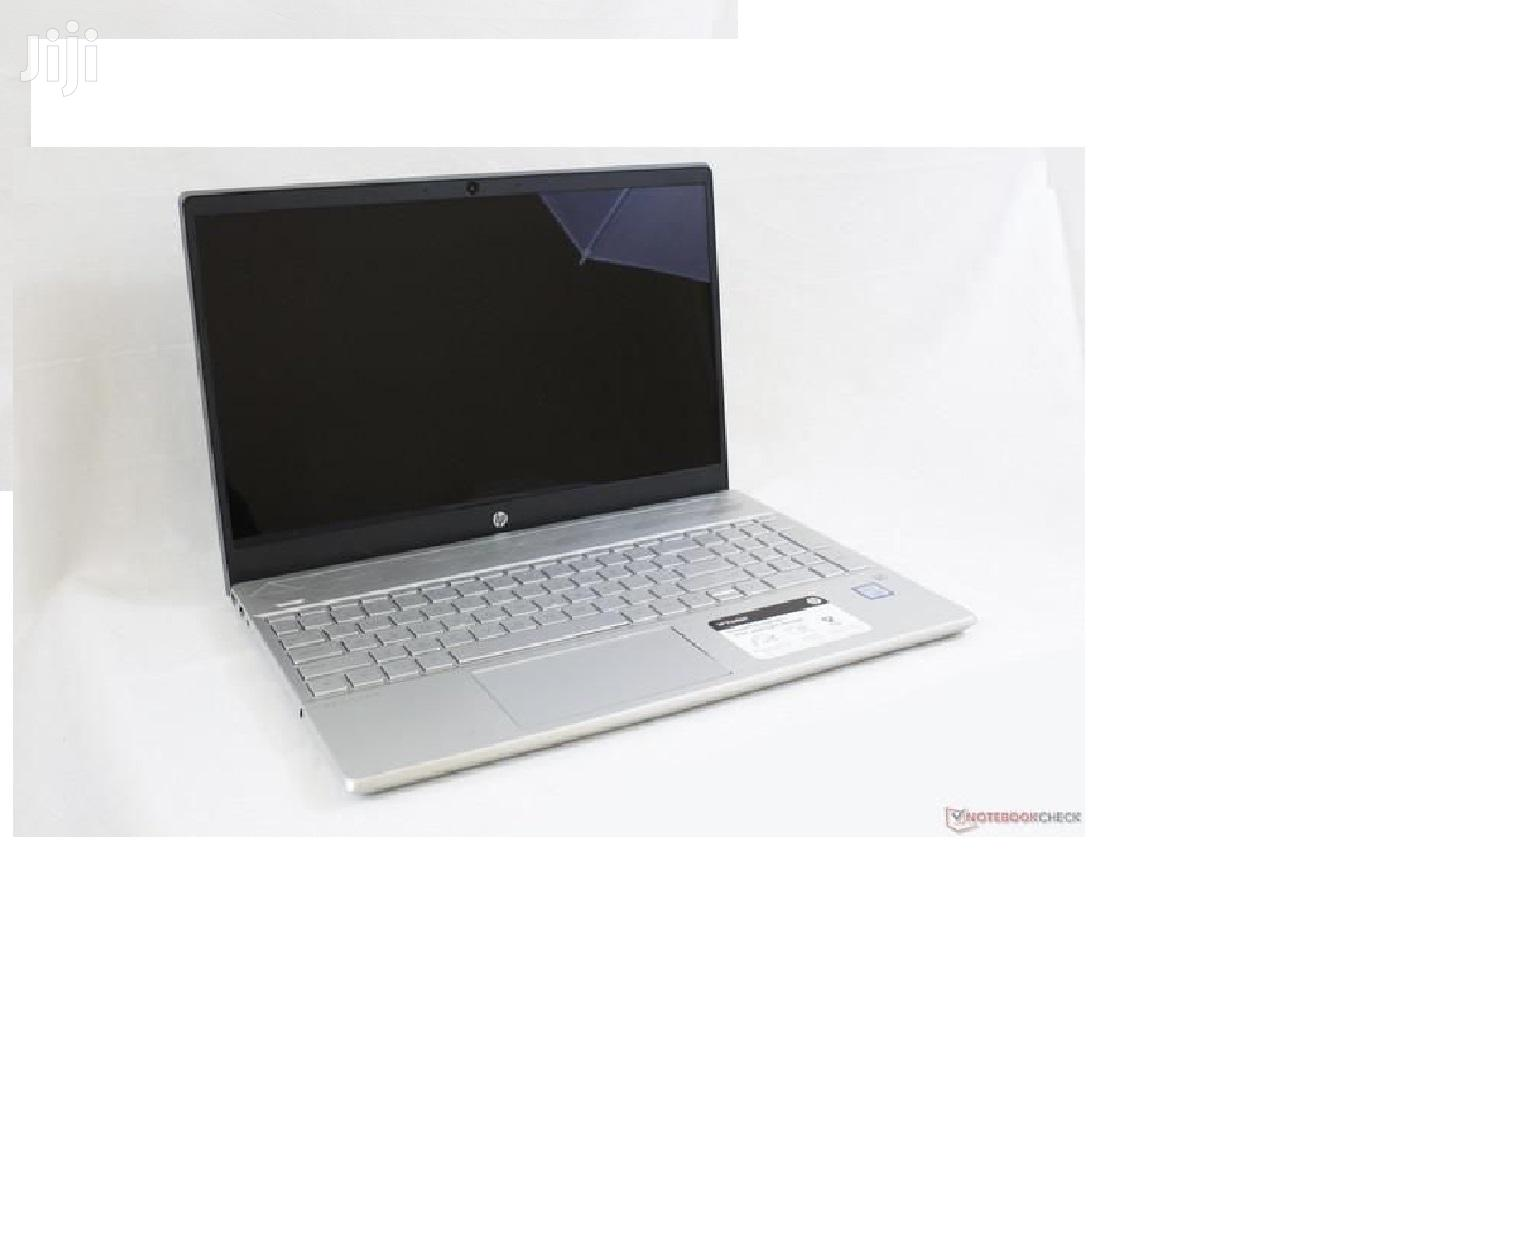 New Laptop HP Pavilion 15 8GB Intel Core I7 SSD 512GB | Laptops & Computers for sale in Tema Metropolitan, Greater Accra, Ghana